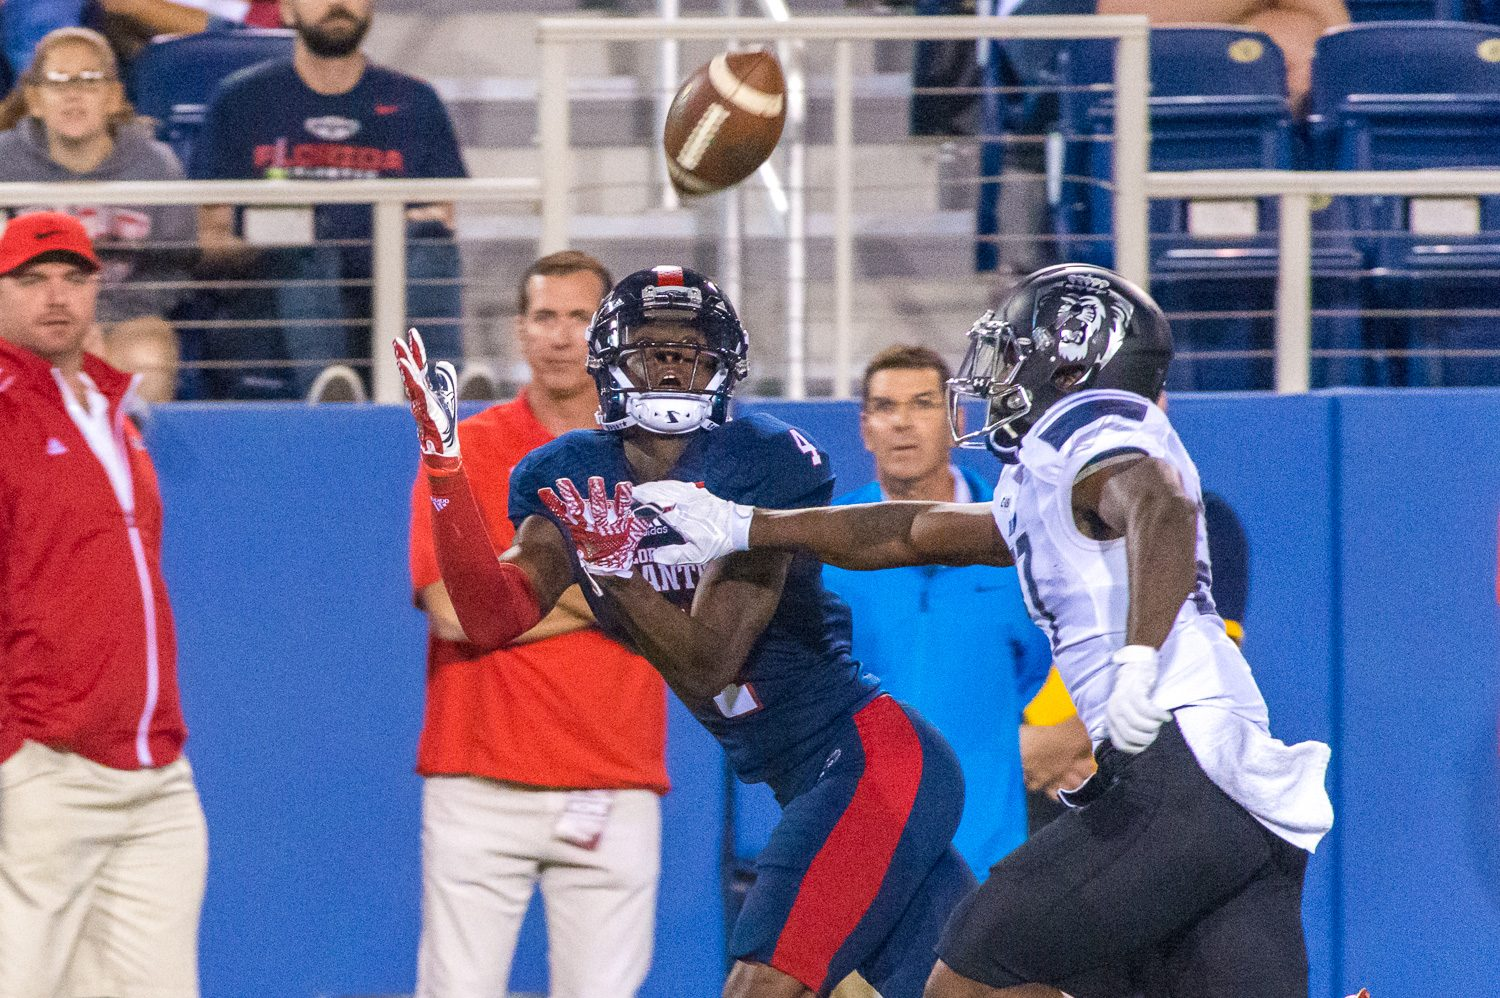 Owls wide receiver Kalib Woods (4) reaches to catch a 38-yard pass from quarterback Jason Driskel (16)during the Owls game against Old Dominion on November 19, 2016. Photo by Max Jackson